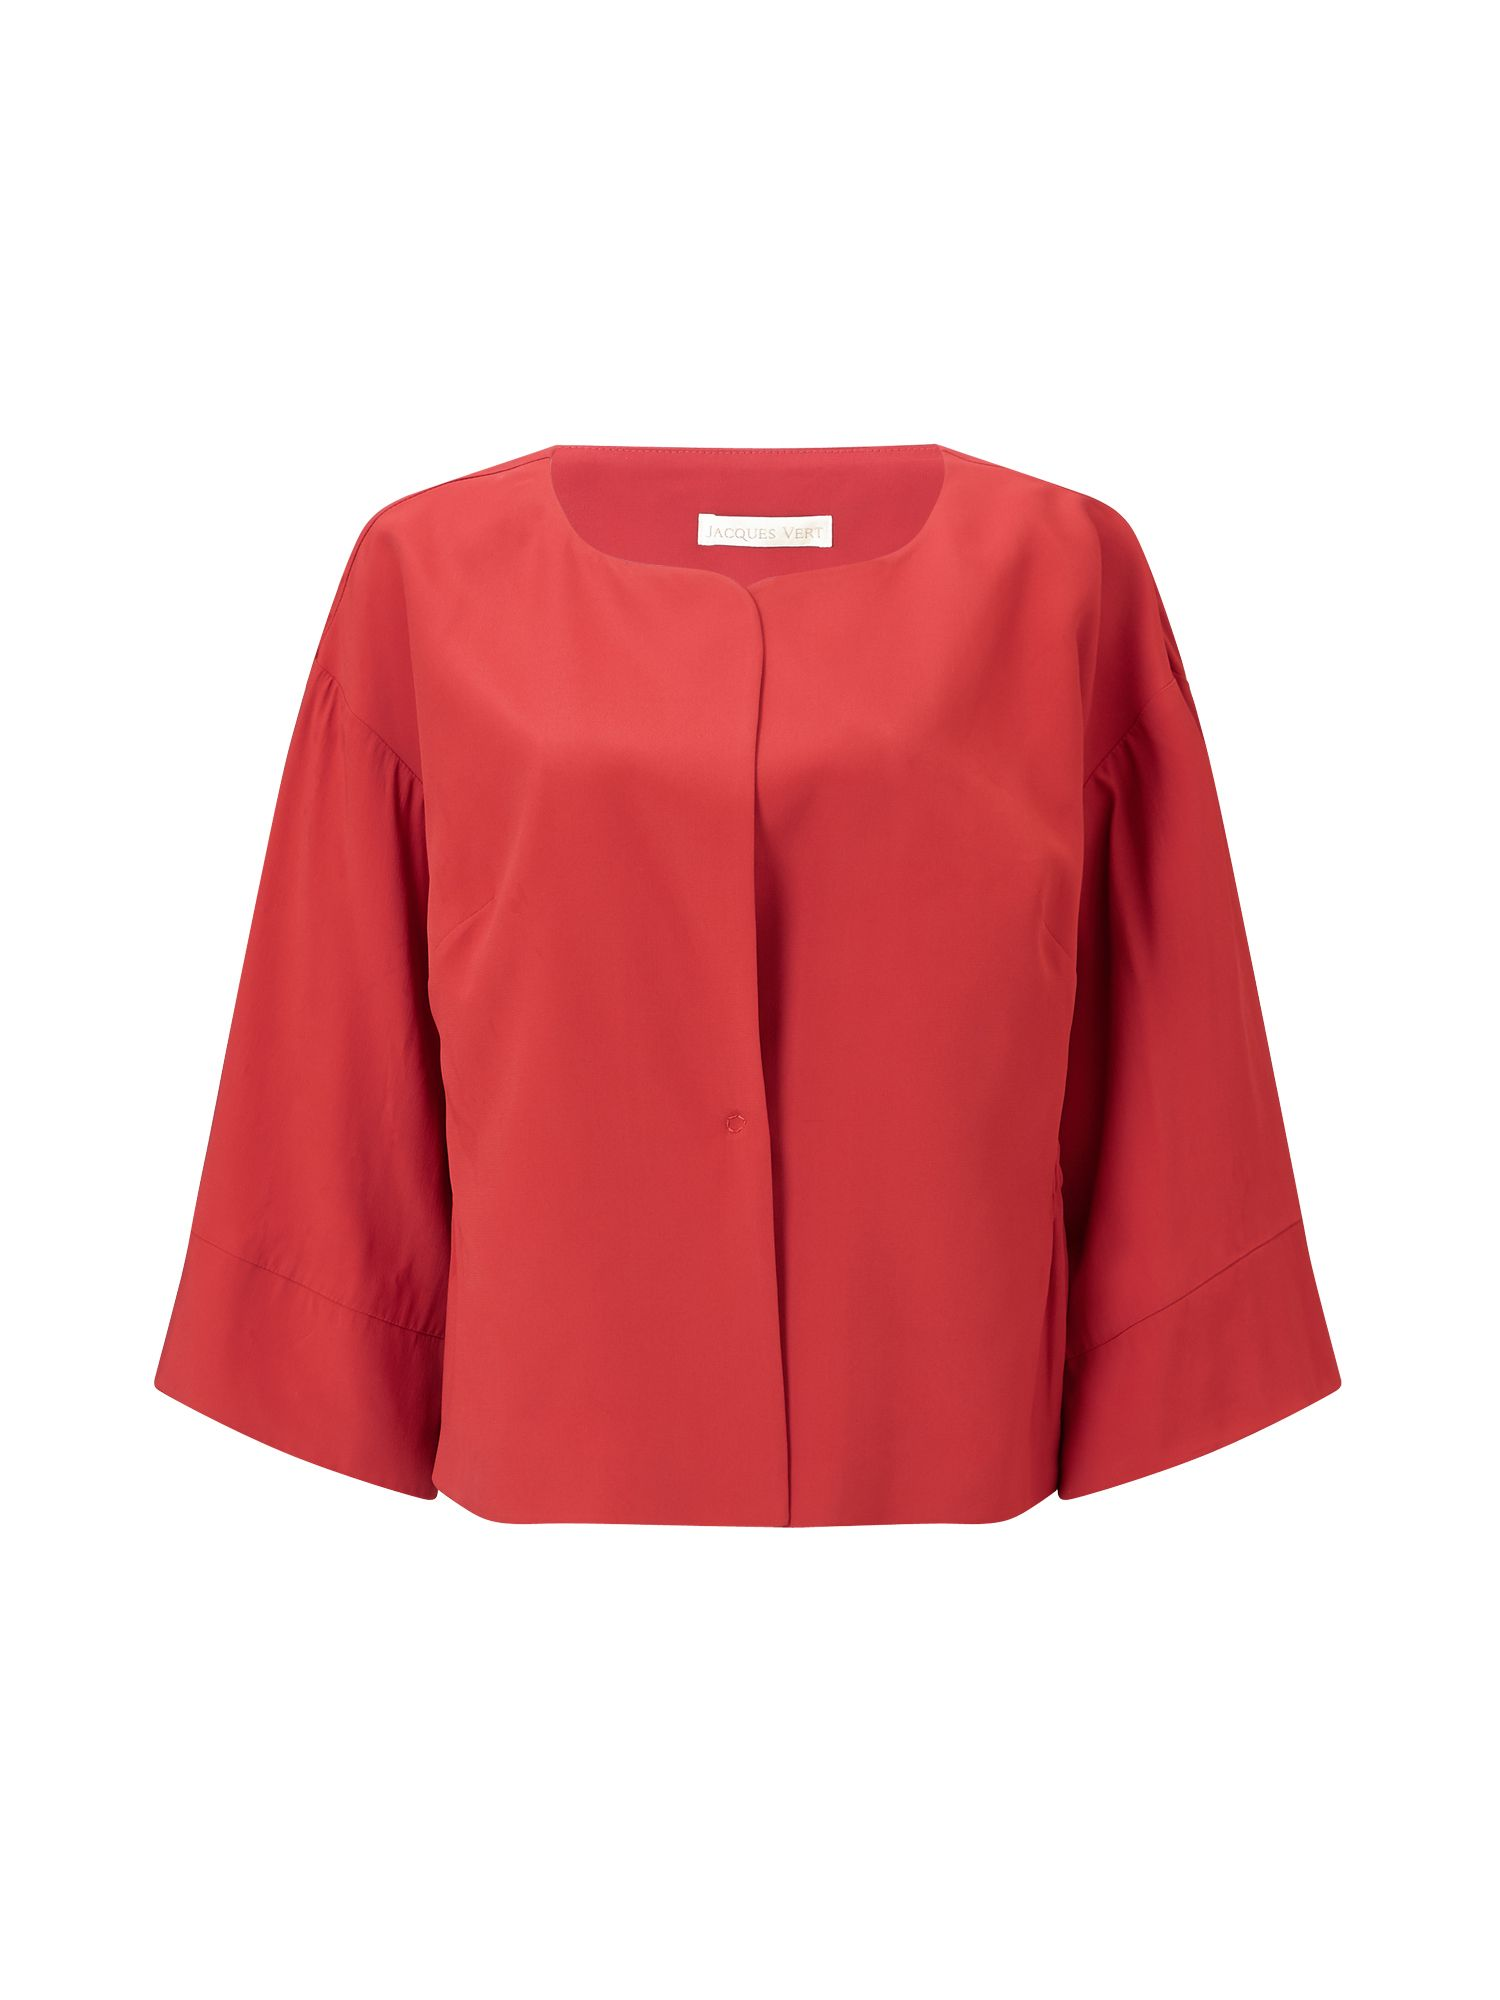 Jacques Vert Cinched Waist Kimono Jacket, Red